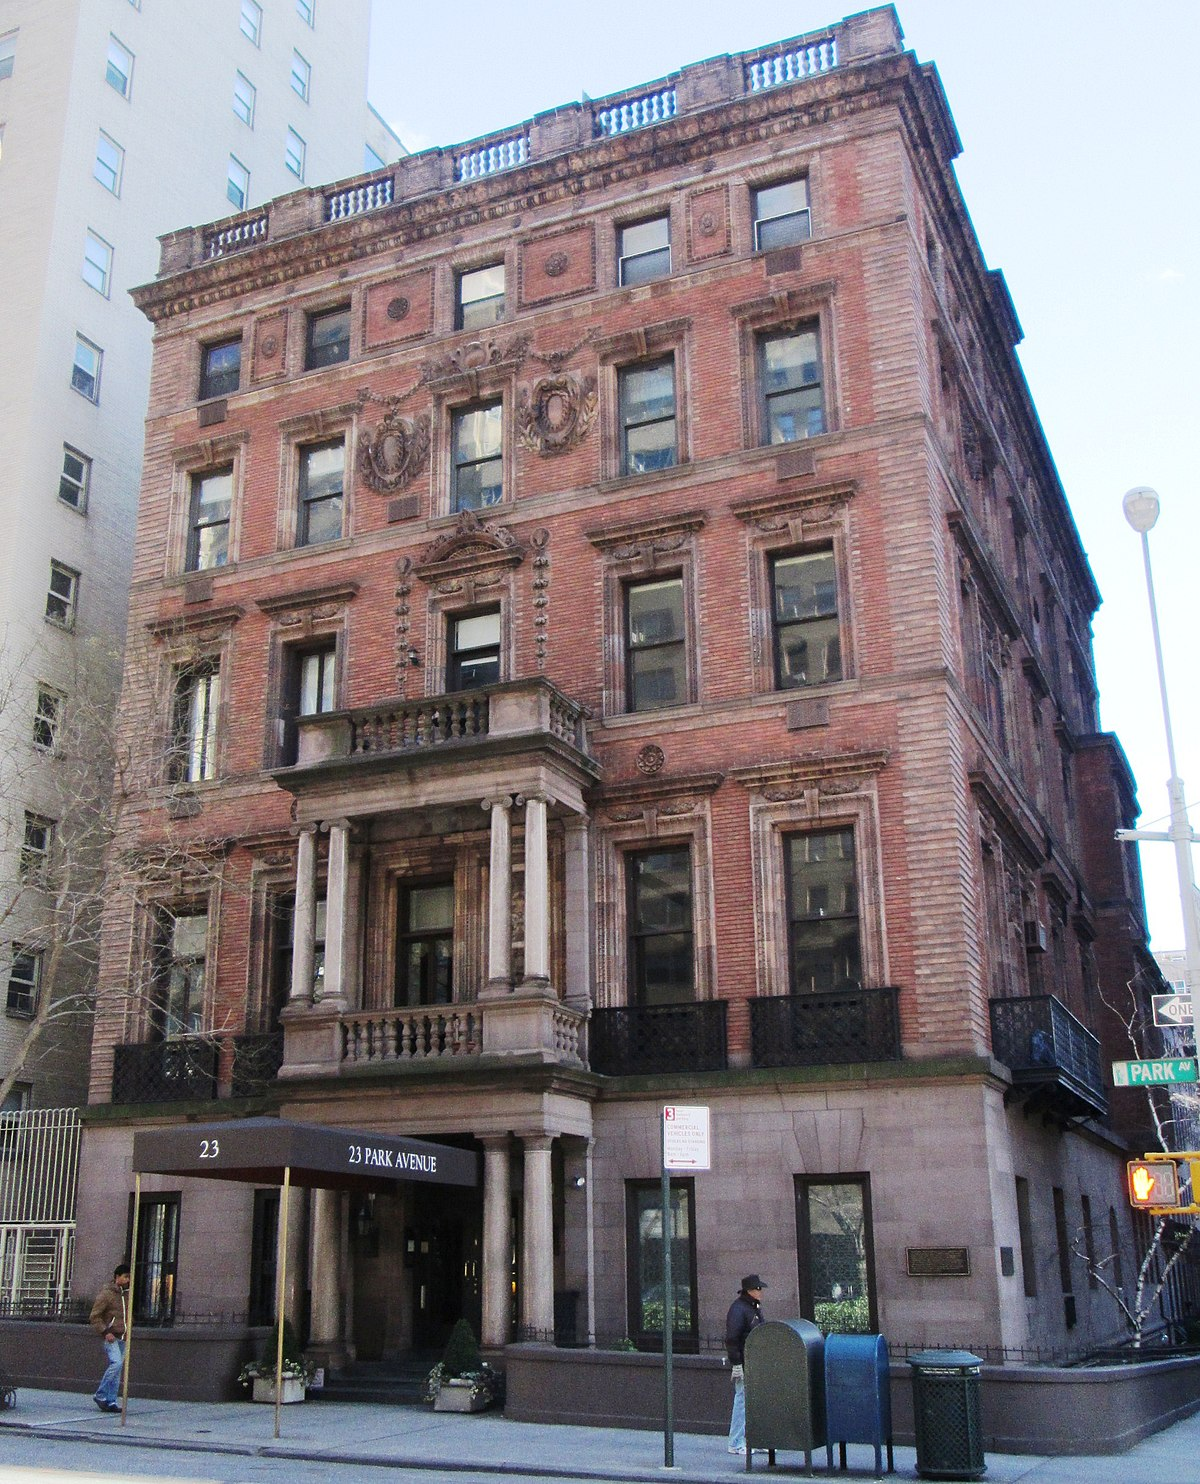 Robb House (New York City)